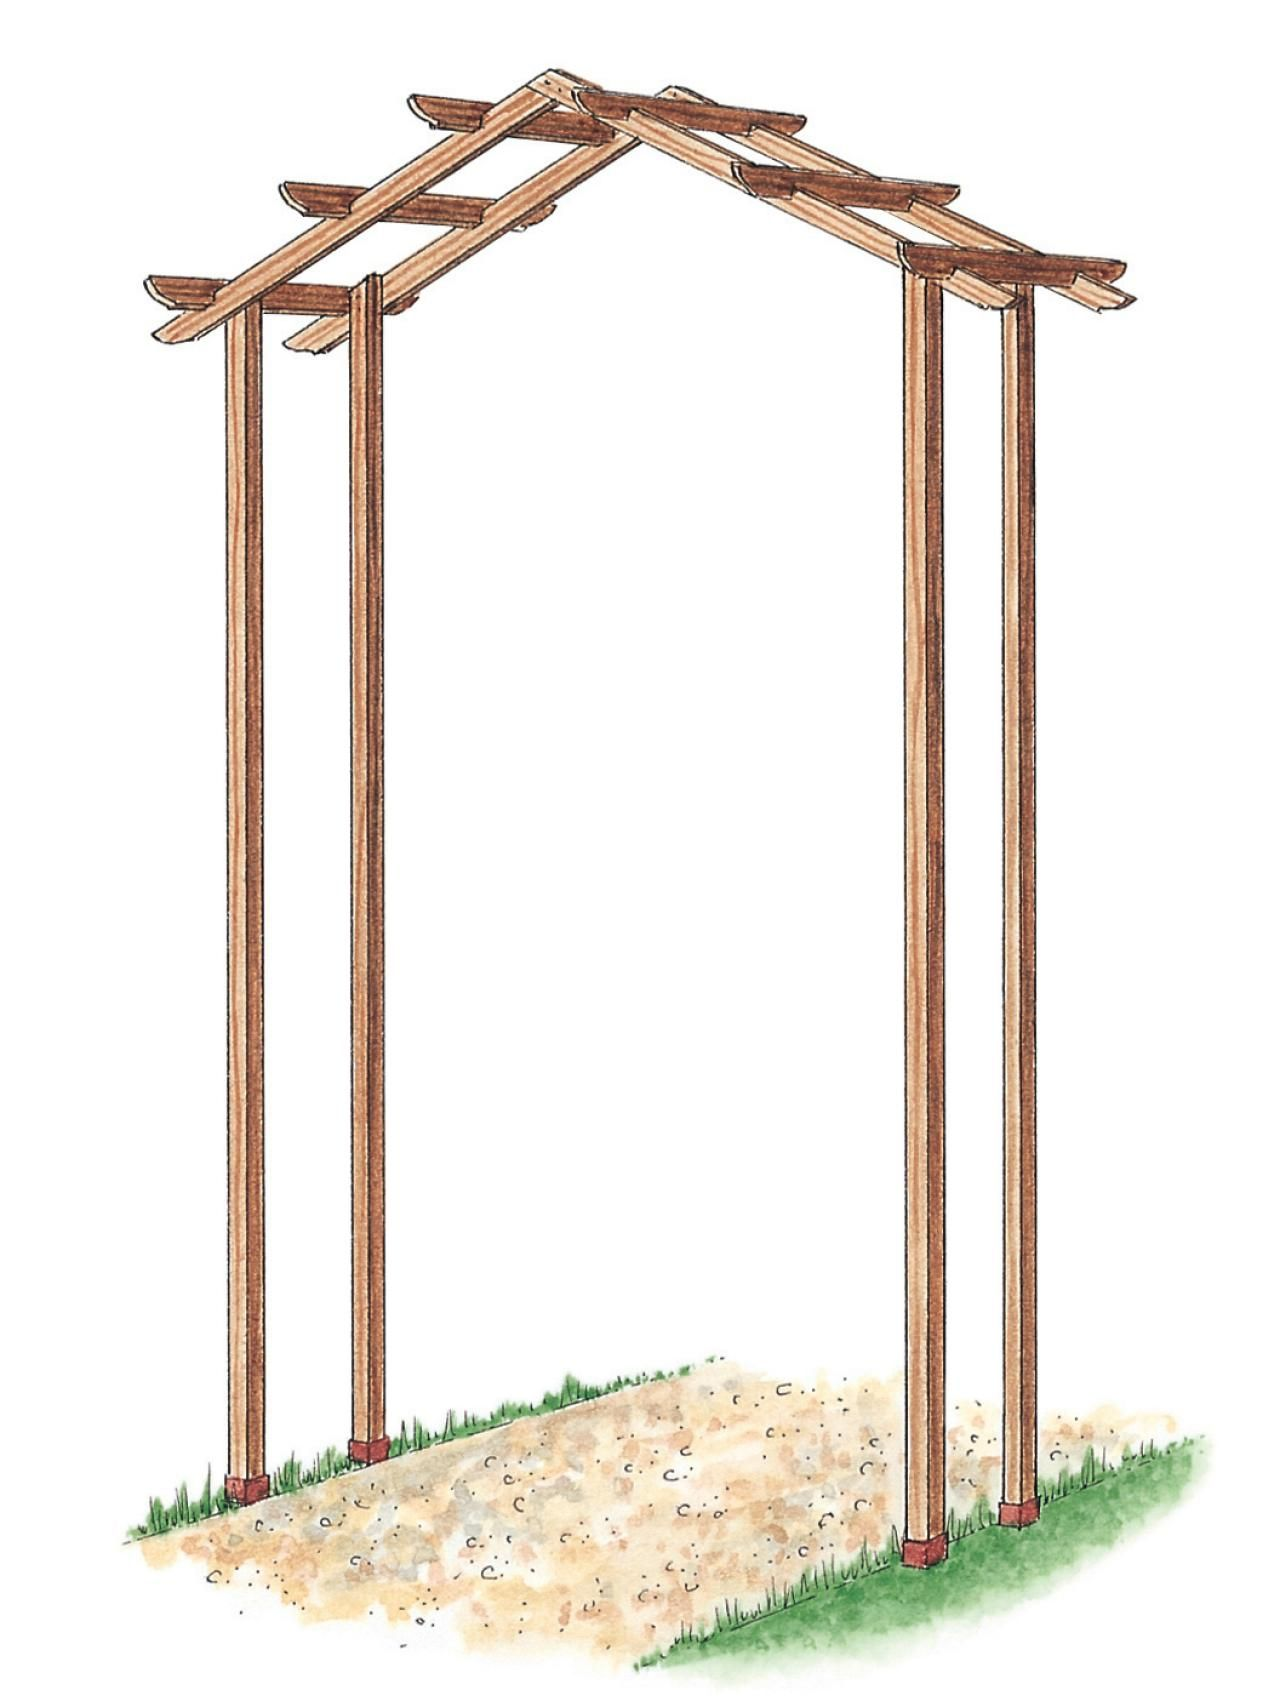 How to build a wooden arch kit wooden arch arch and learning - Garden wood arches ...